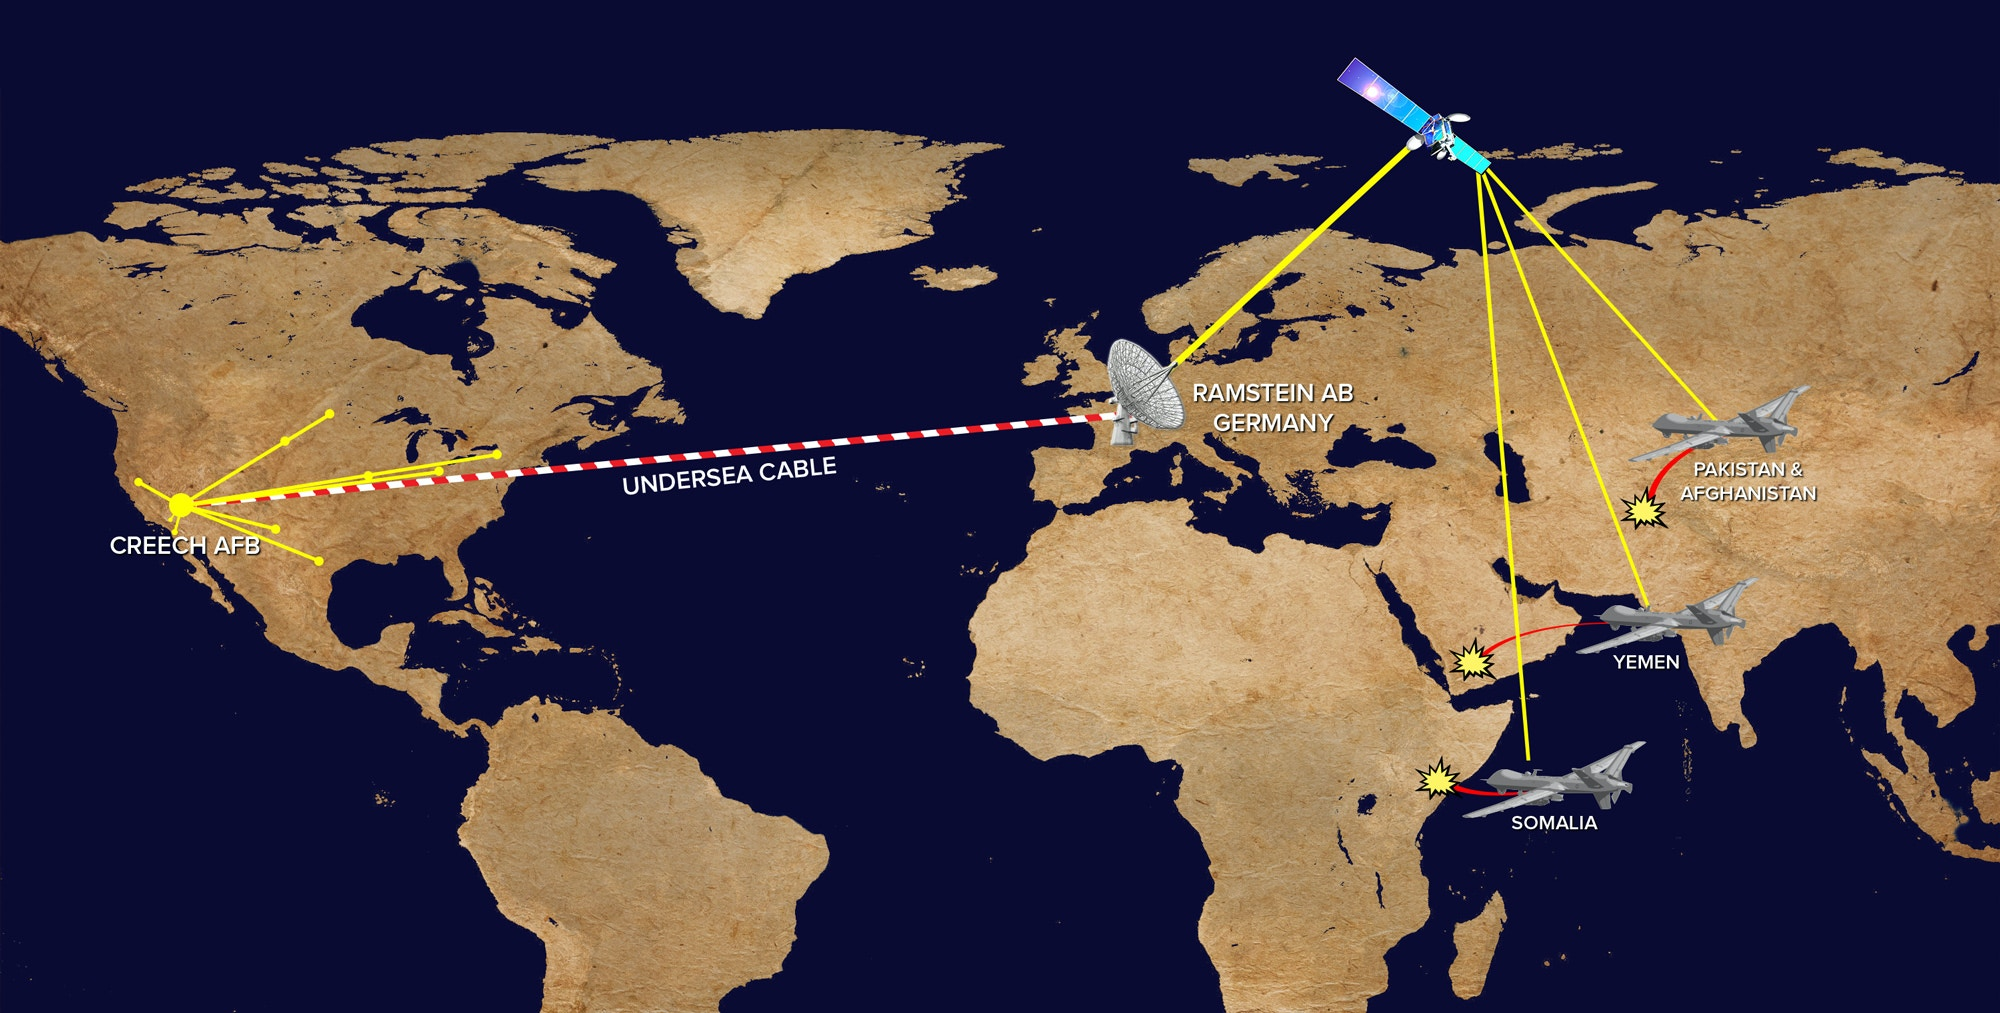 Transatlantic cables connect U.S. drone pilots half a world away. (Illustration: Josh Begley)